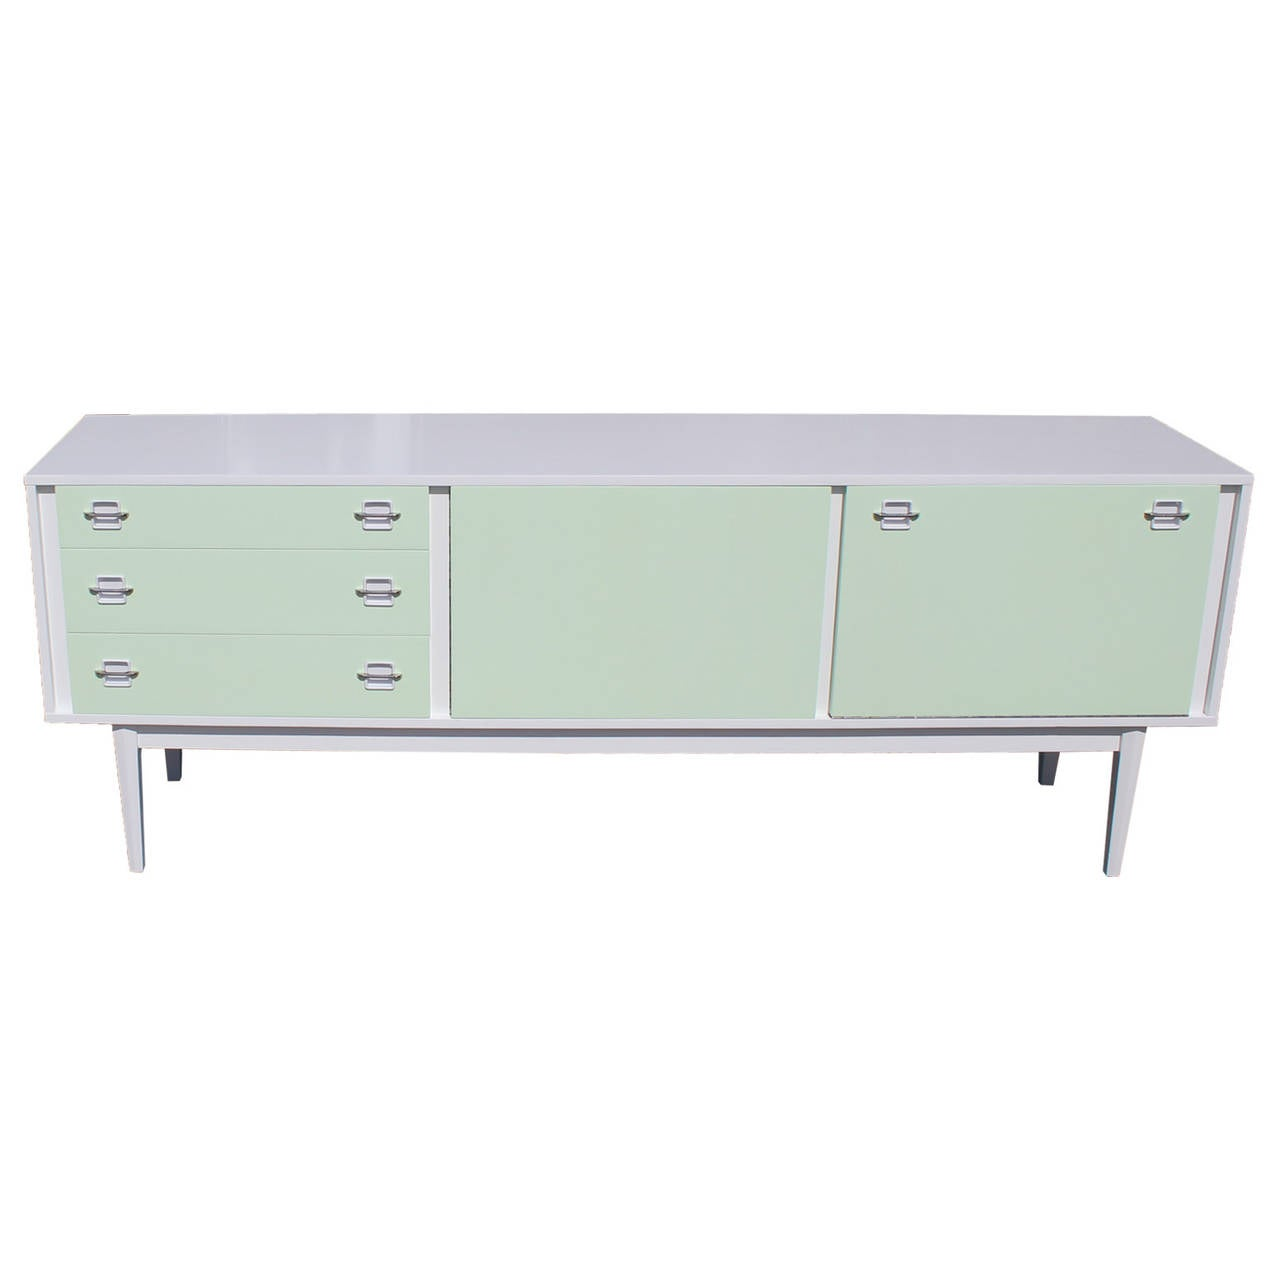 Modern White Credenza White And Mint Mid Century Modern Lacquered Sideboard Chrome